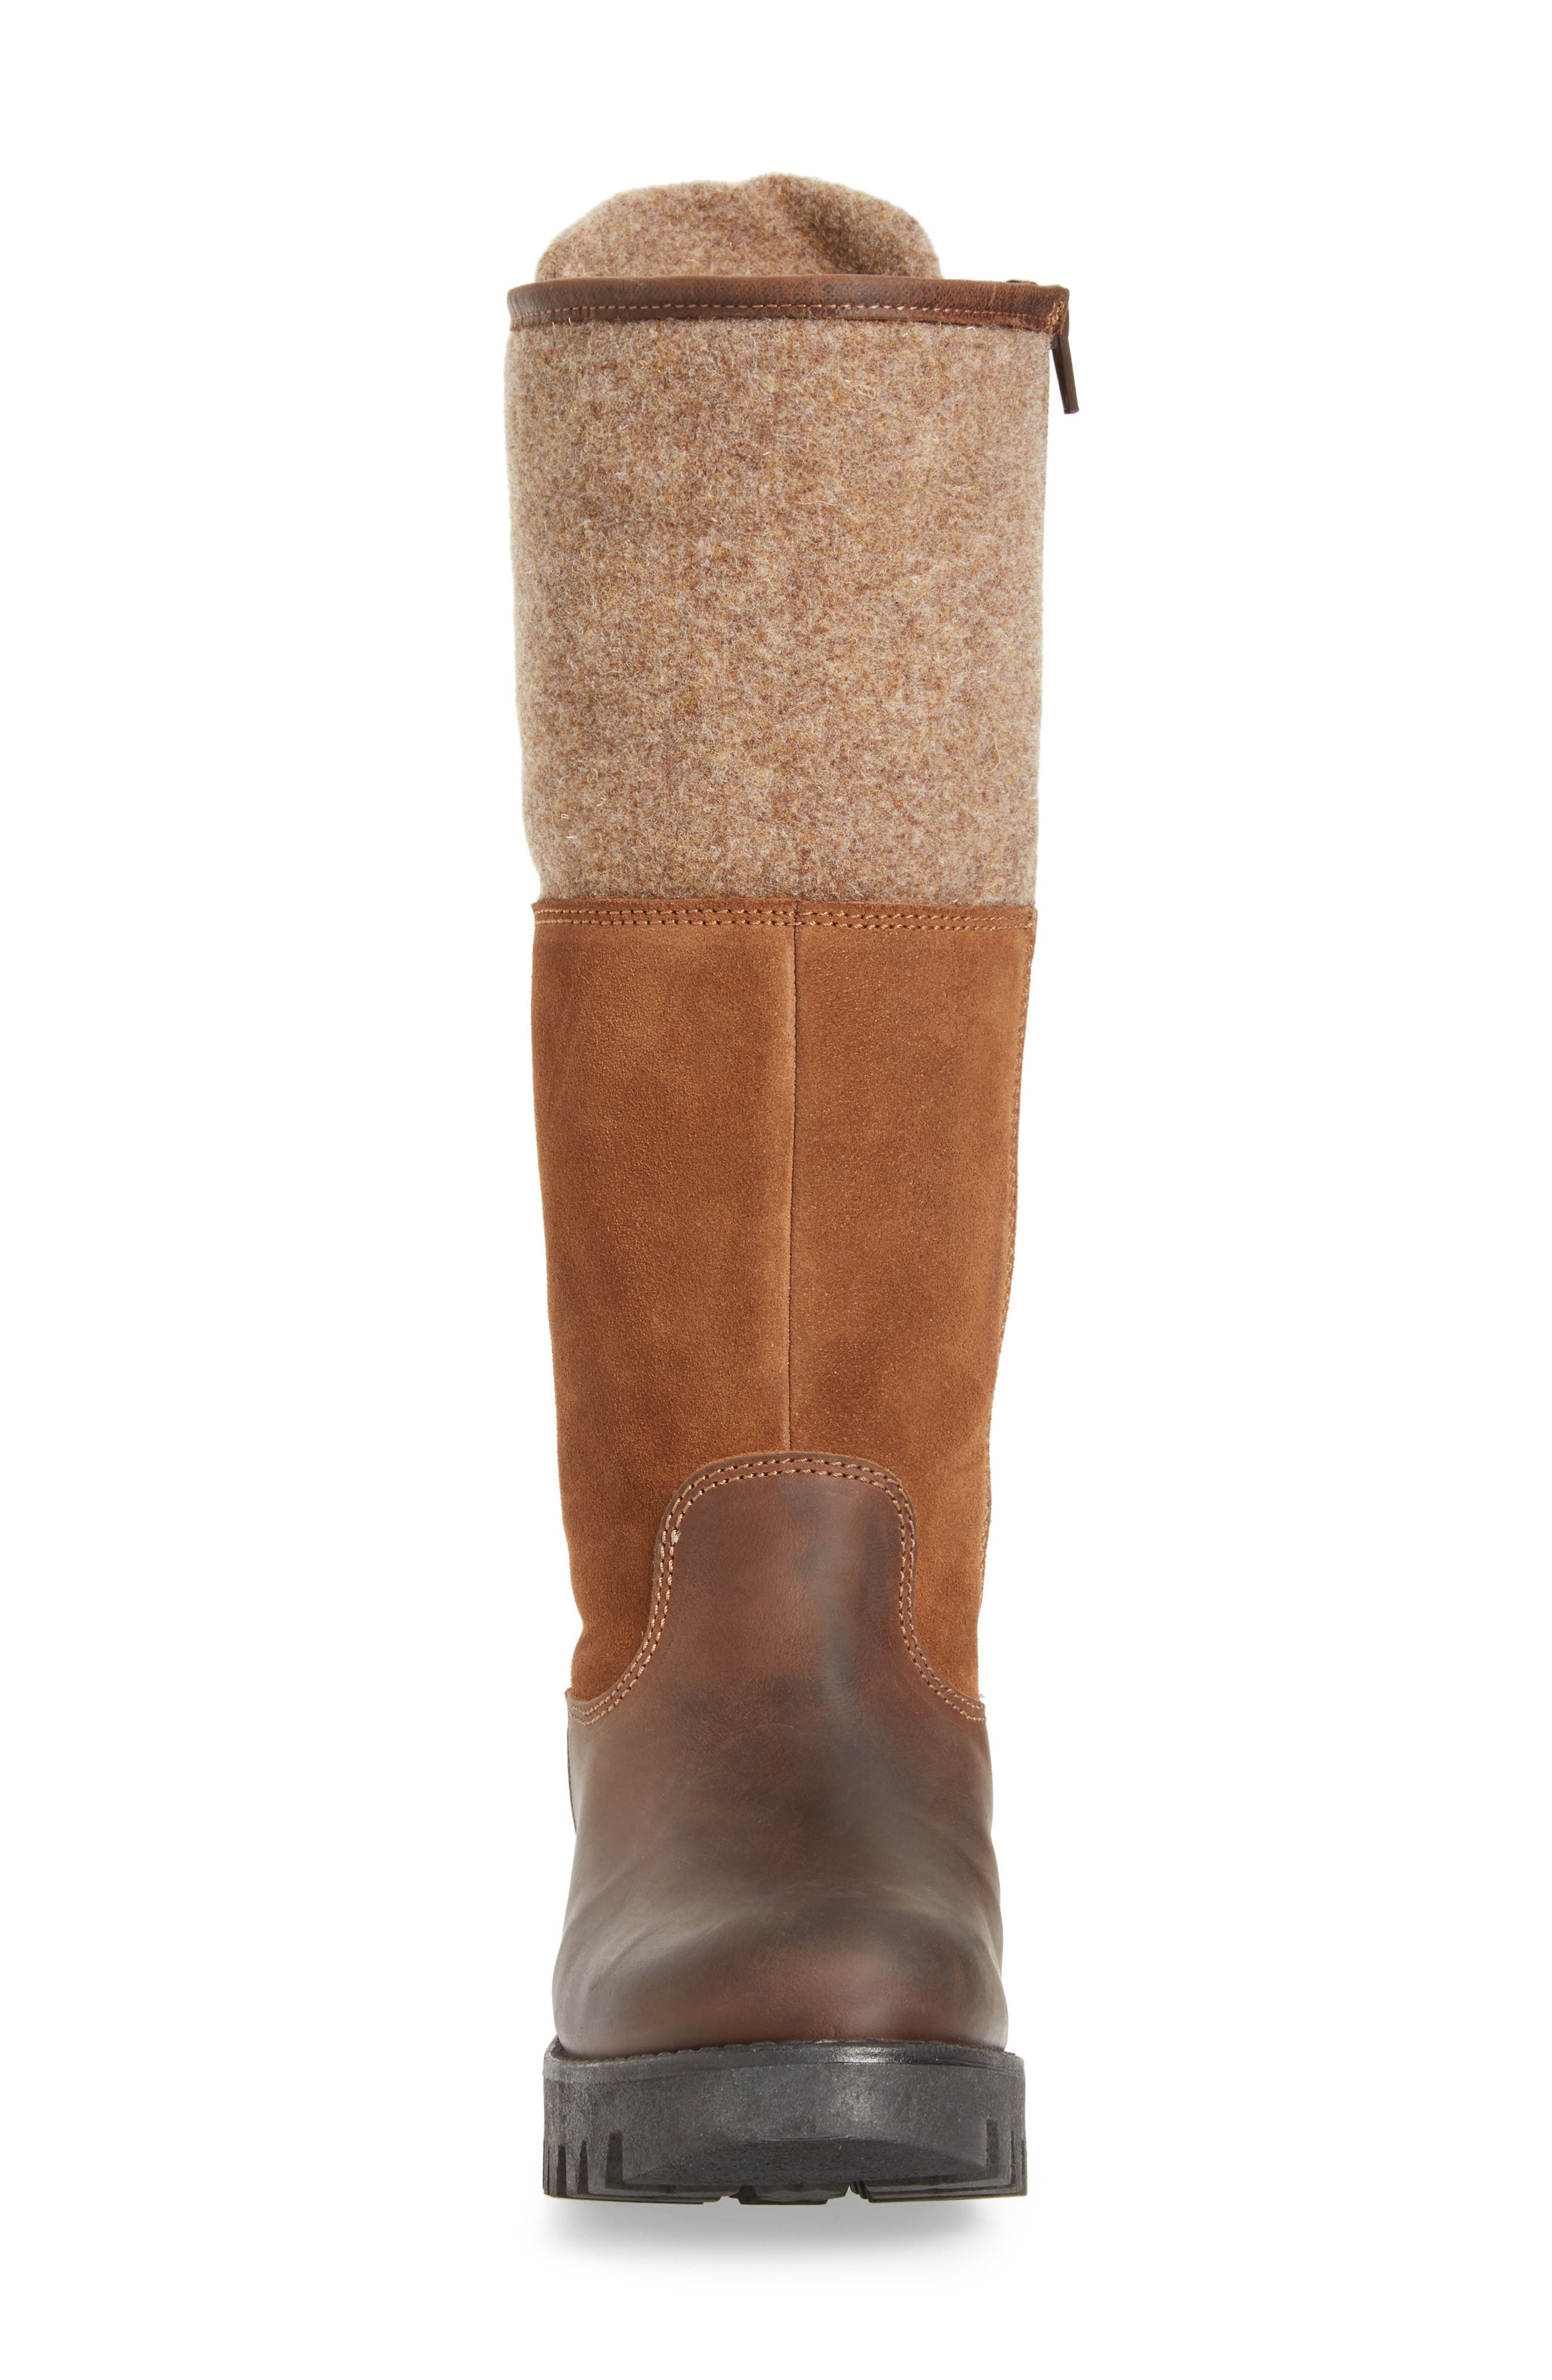 'Ginger' Waterproof Mid Calf Platform Boot,                             Alternate thumbnail 4, color,                             Expresso/ Beige